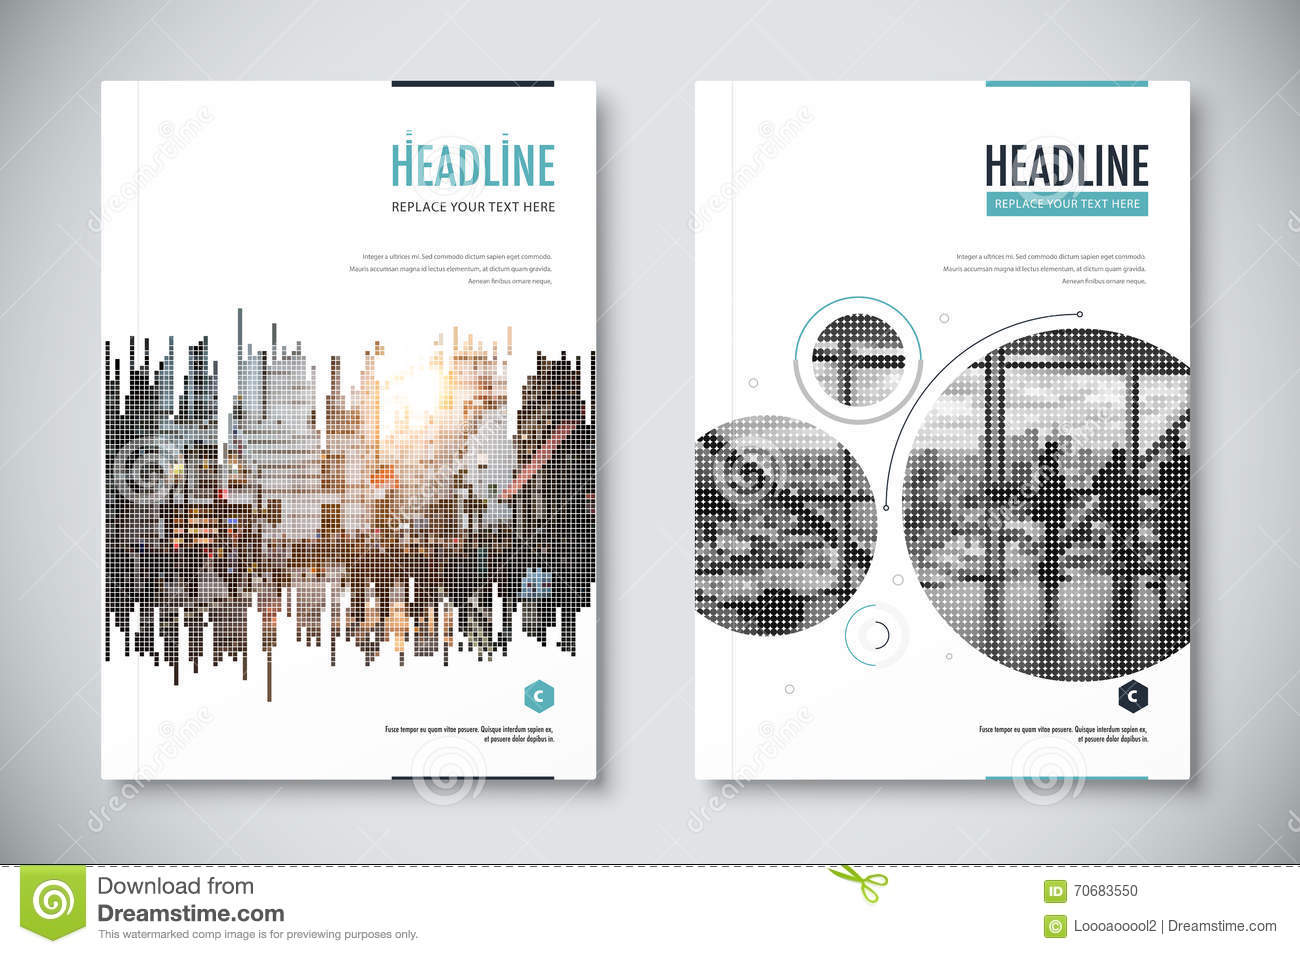 Corporate Annual Report Template Design. Corporate Business Docu. Flyer,  Geometric.  Annual Reports Templates